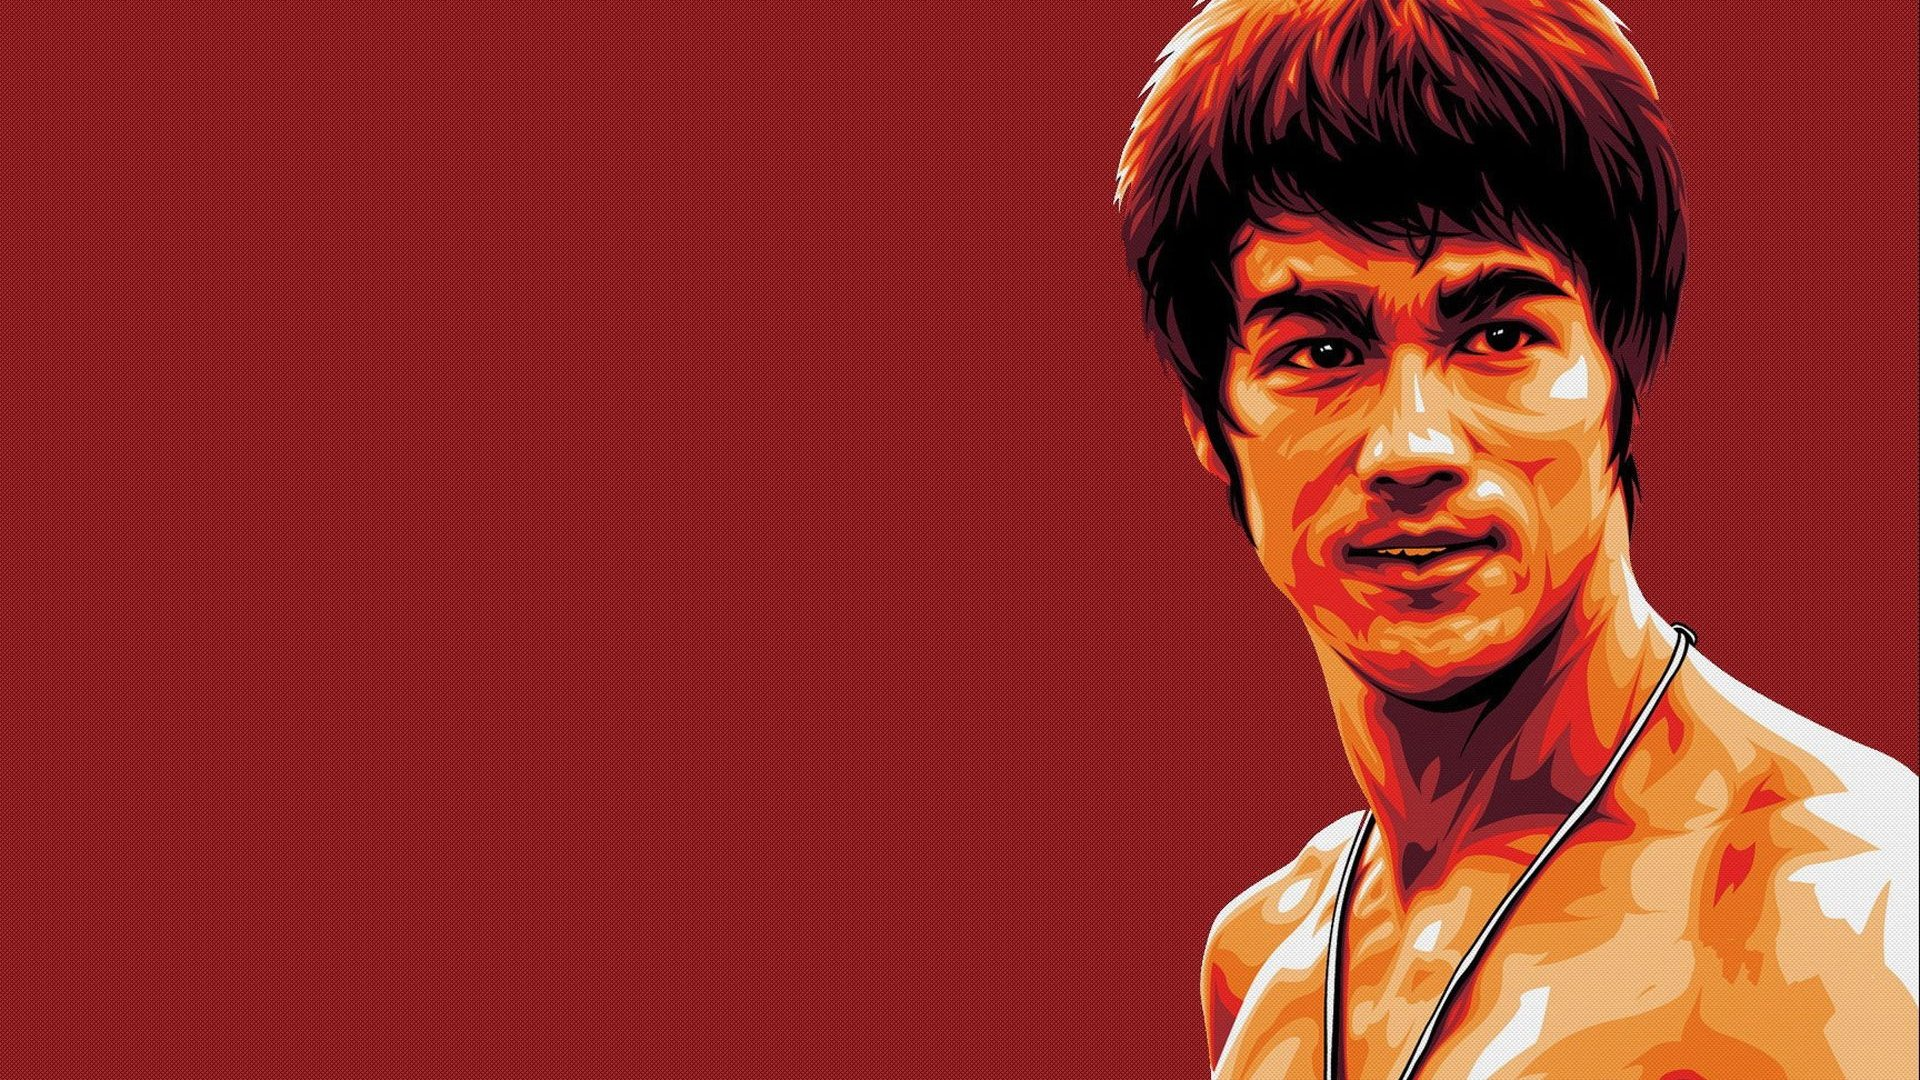 Bruce-Lee-Images-Photos-Pictures-Backgrounds-%C3%97-wallpaper-wpc5803064